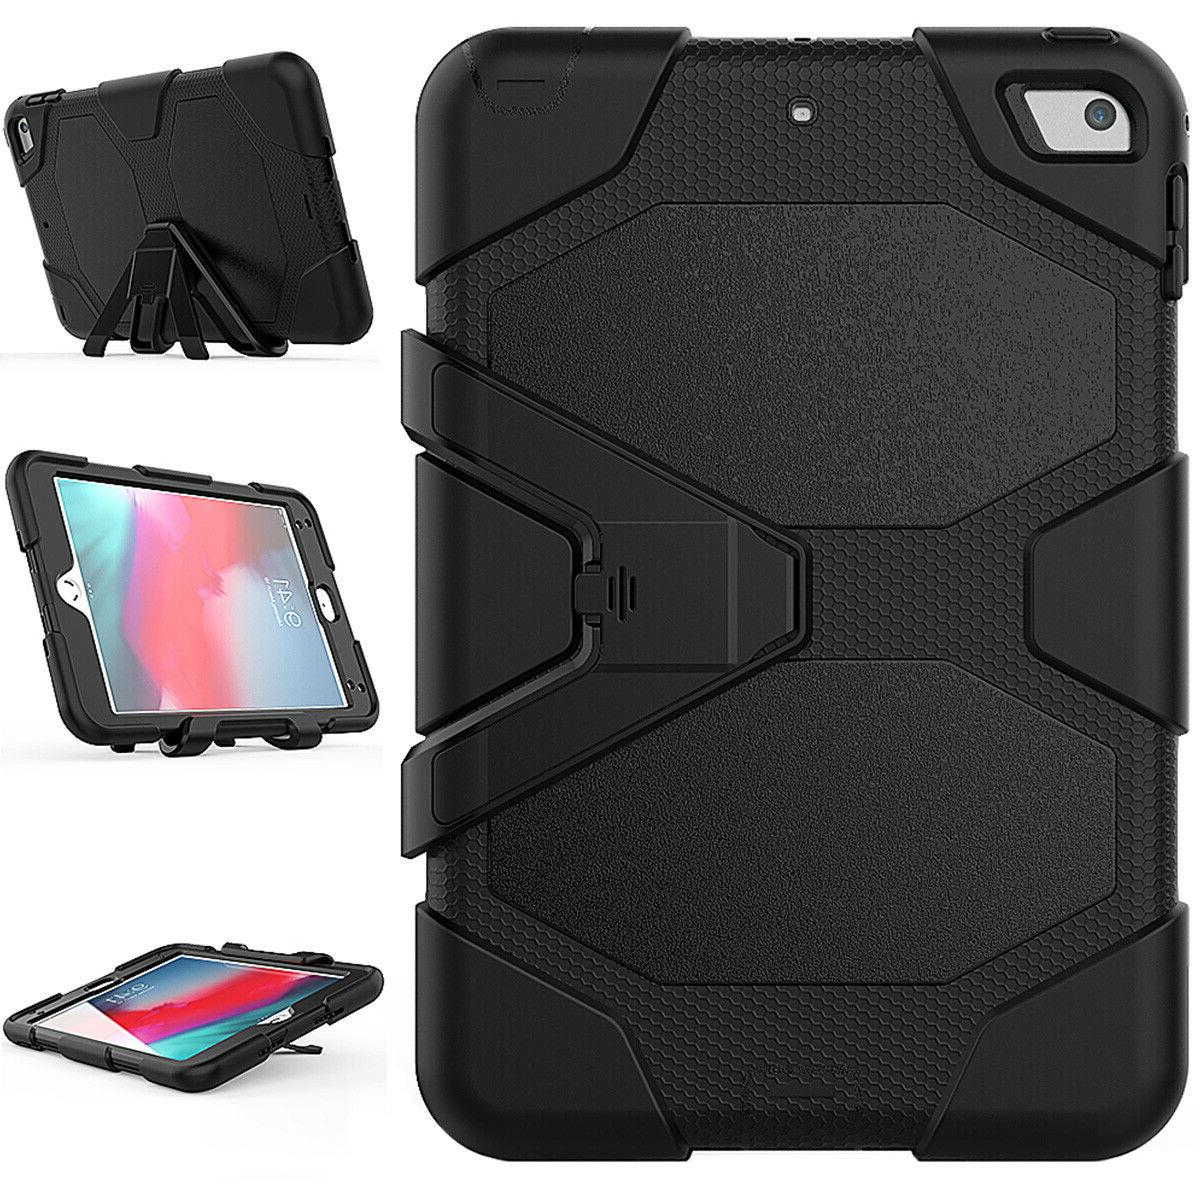 Gen 2019/Mini 4 Tablet Cover Duty Case